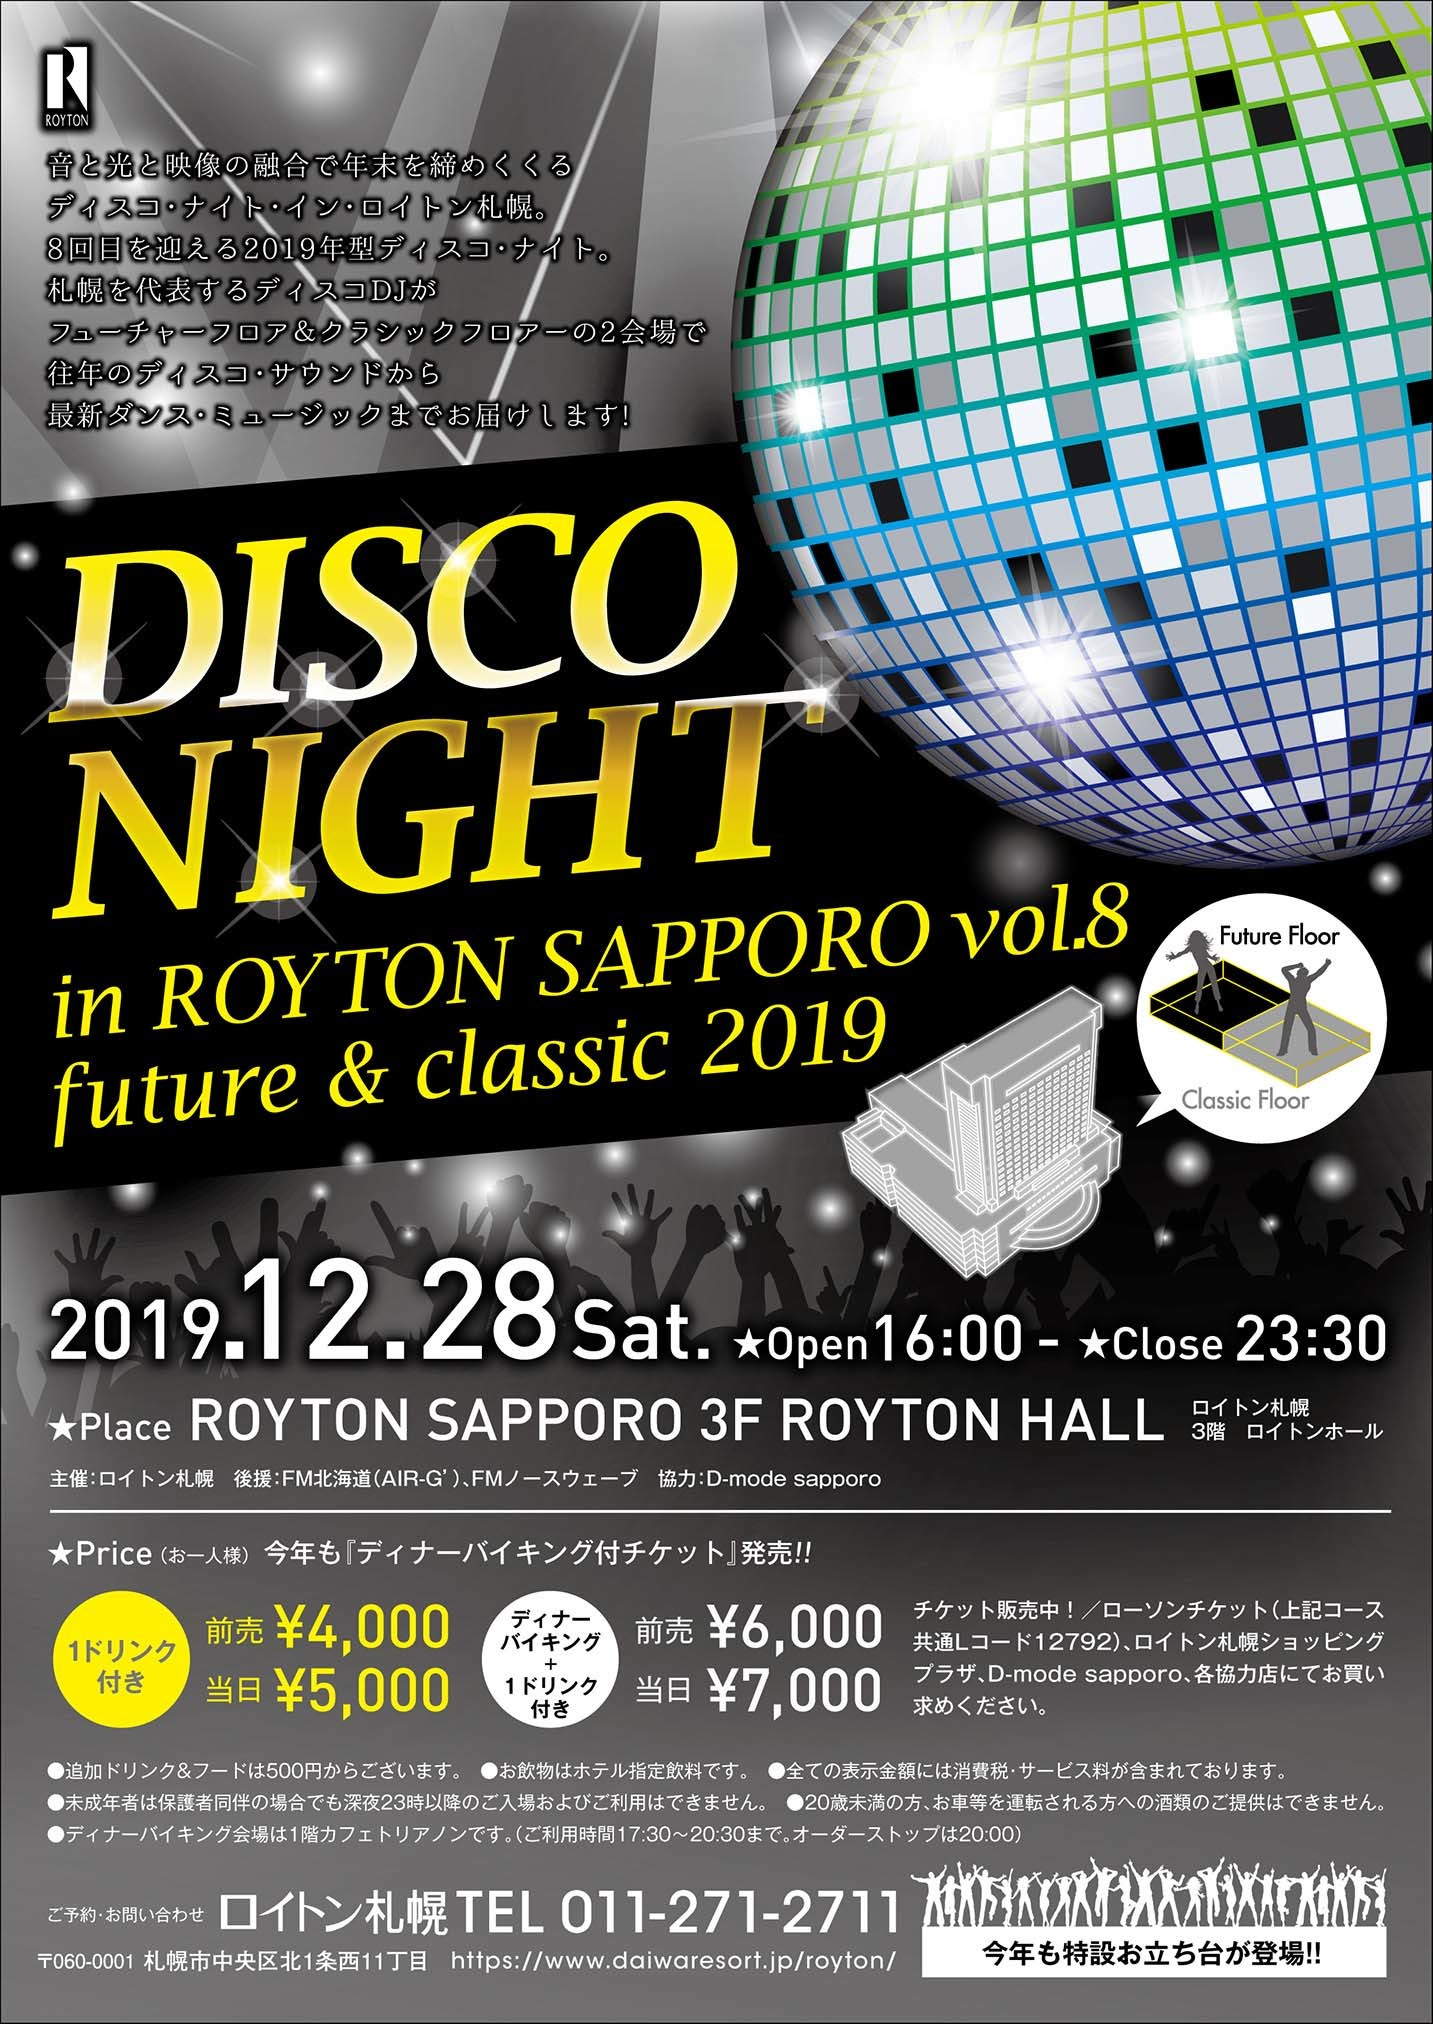 DISCO NIGHT IN ROYTON sapporo vol.8_a0219438_16244835.jpg